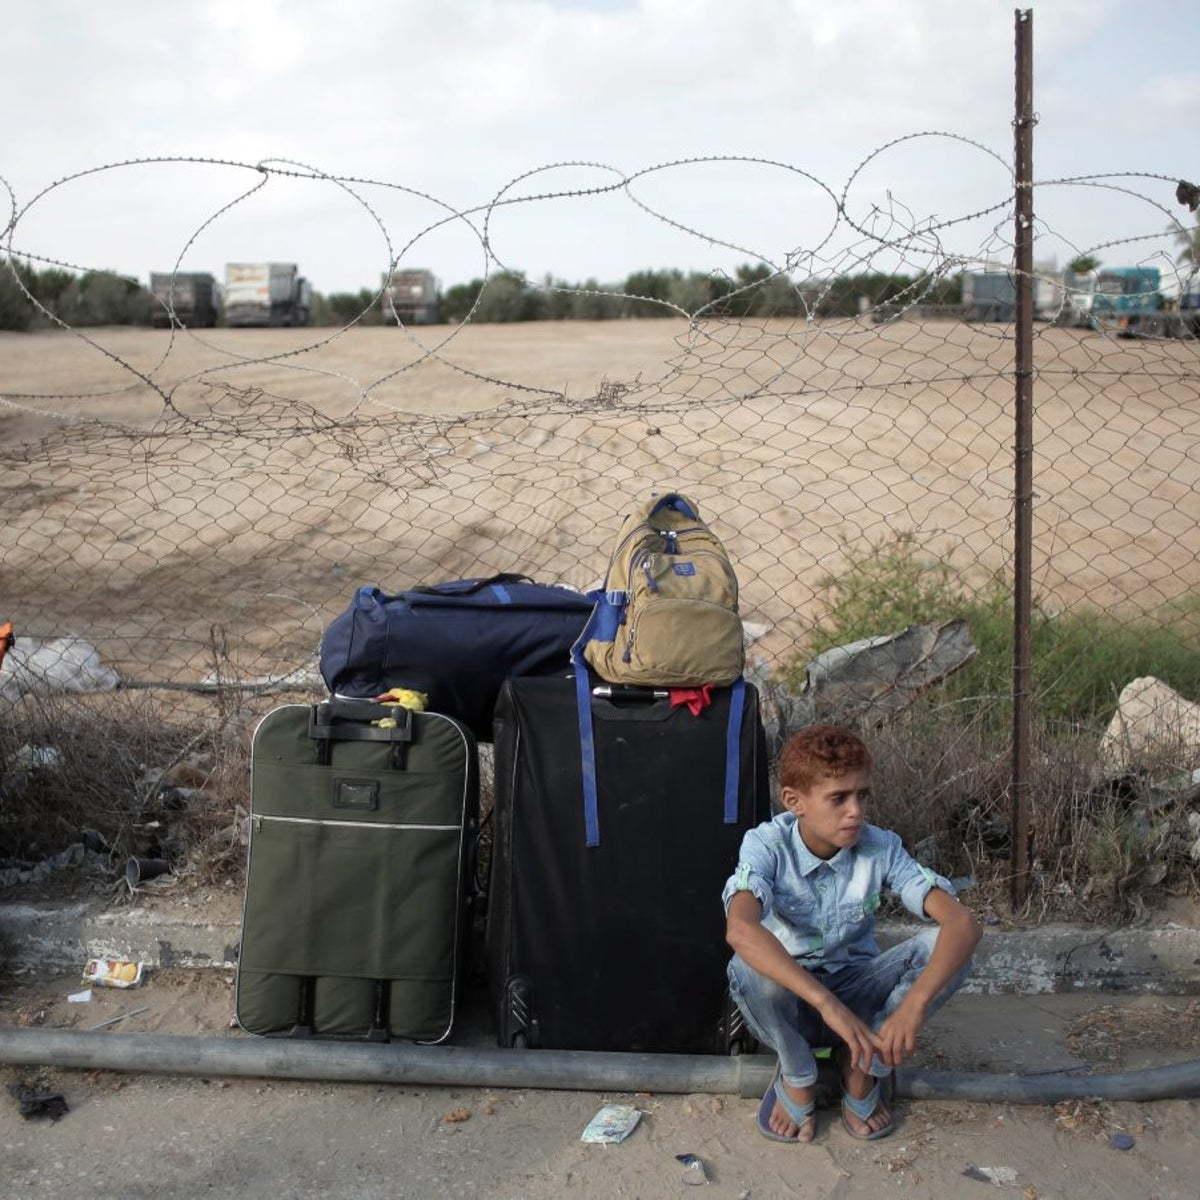 A Palestinian boy sits next to the luggage as he and his family wait to cross the border into Egypt, at the Rafah crossing border in the southern Gaza Strip, Saturday, Sept. 3, 2016.